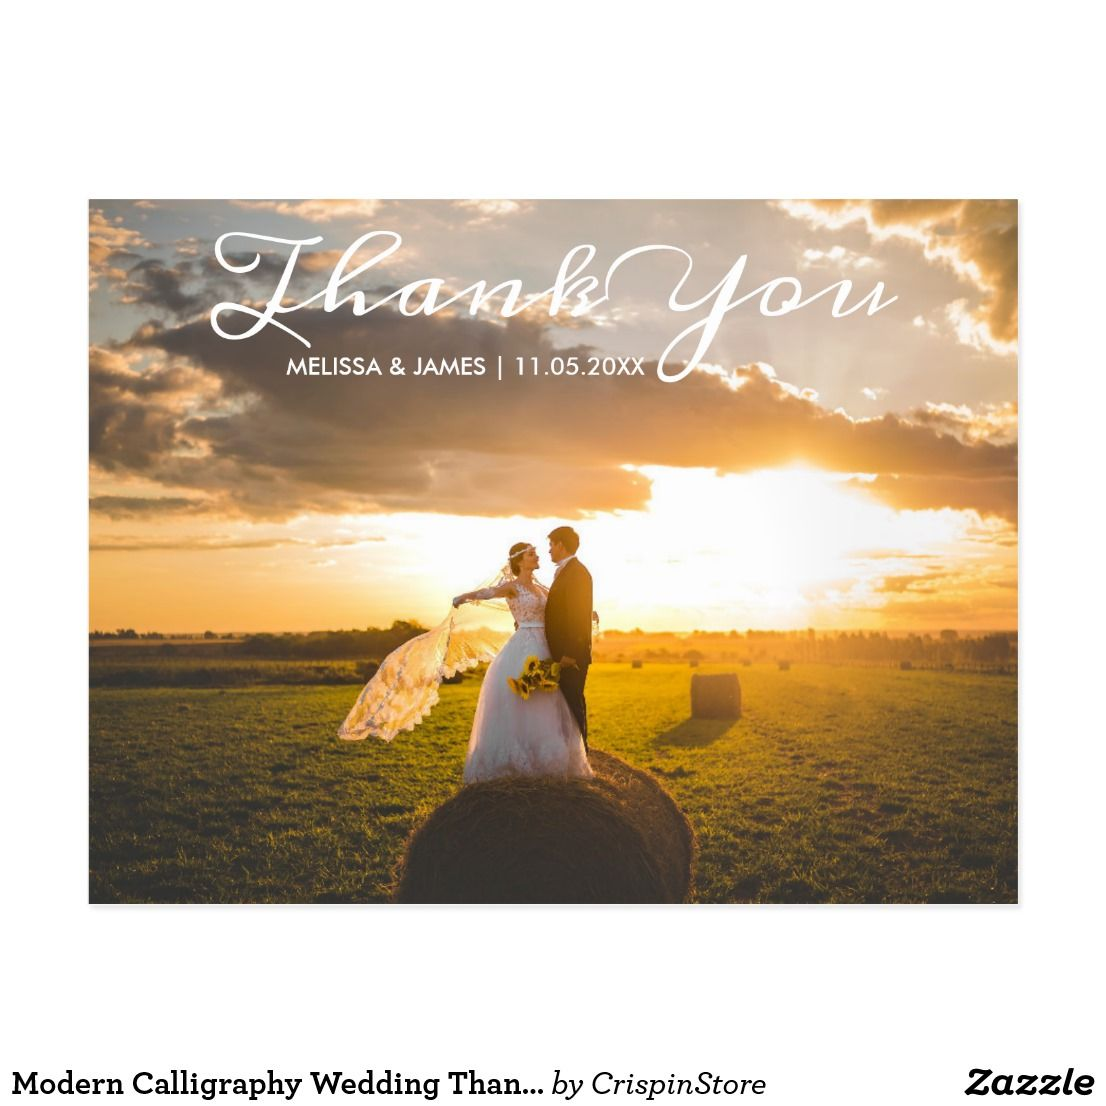 Modern Calligraphy Wedding Thank You Photo Postcard Modern